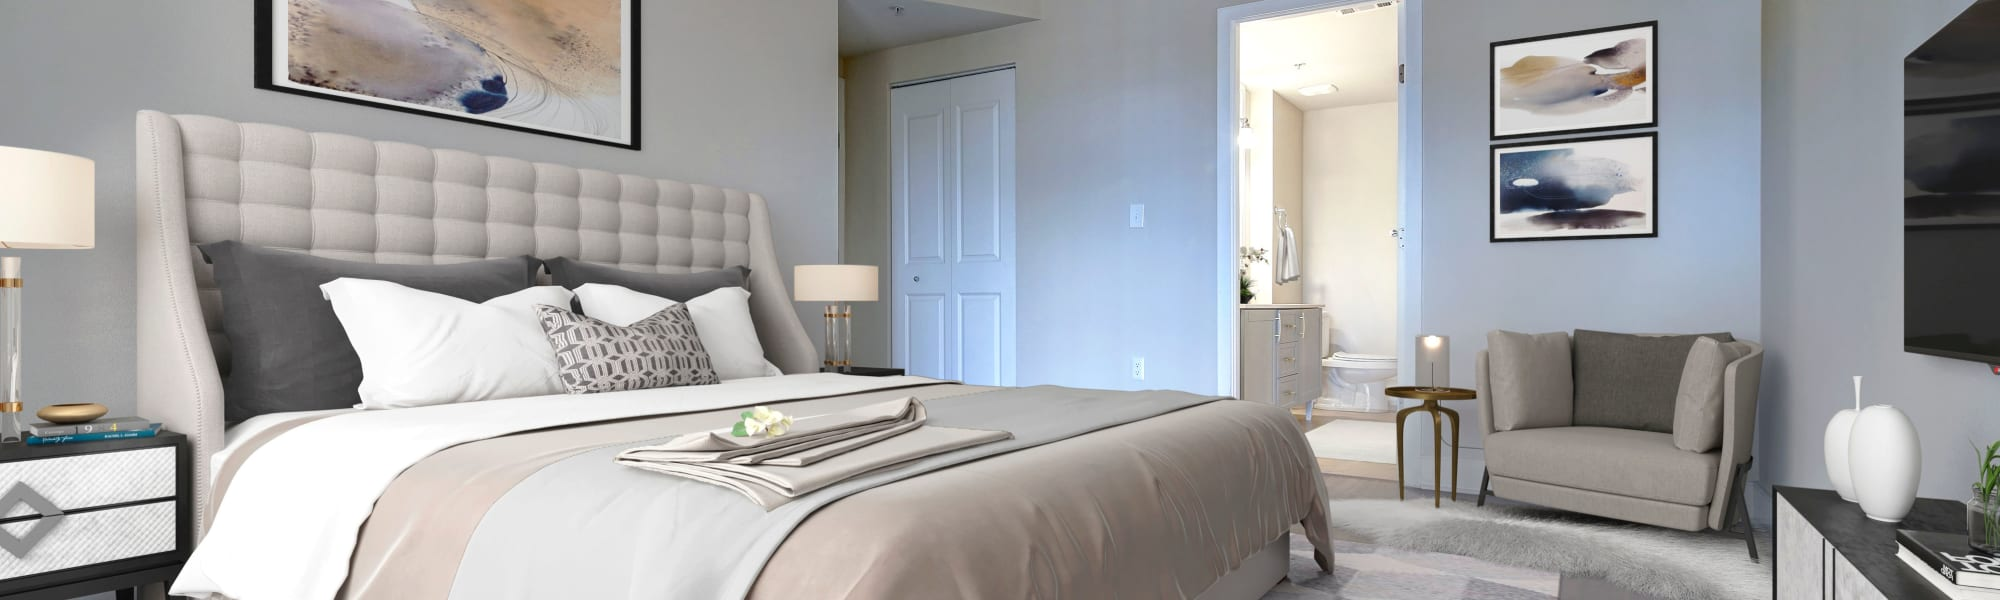 Floor plans at The Heritage at Boca Raton in Boca Raton, Florida